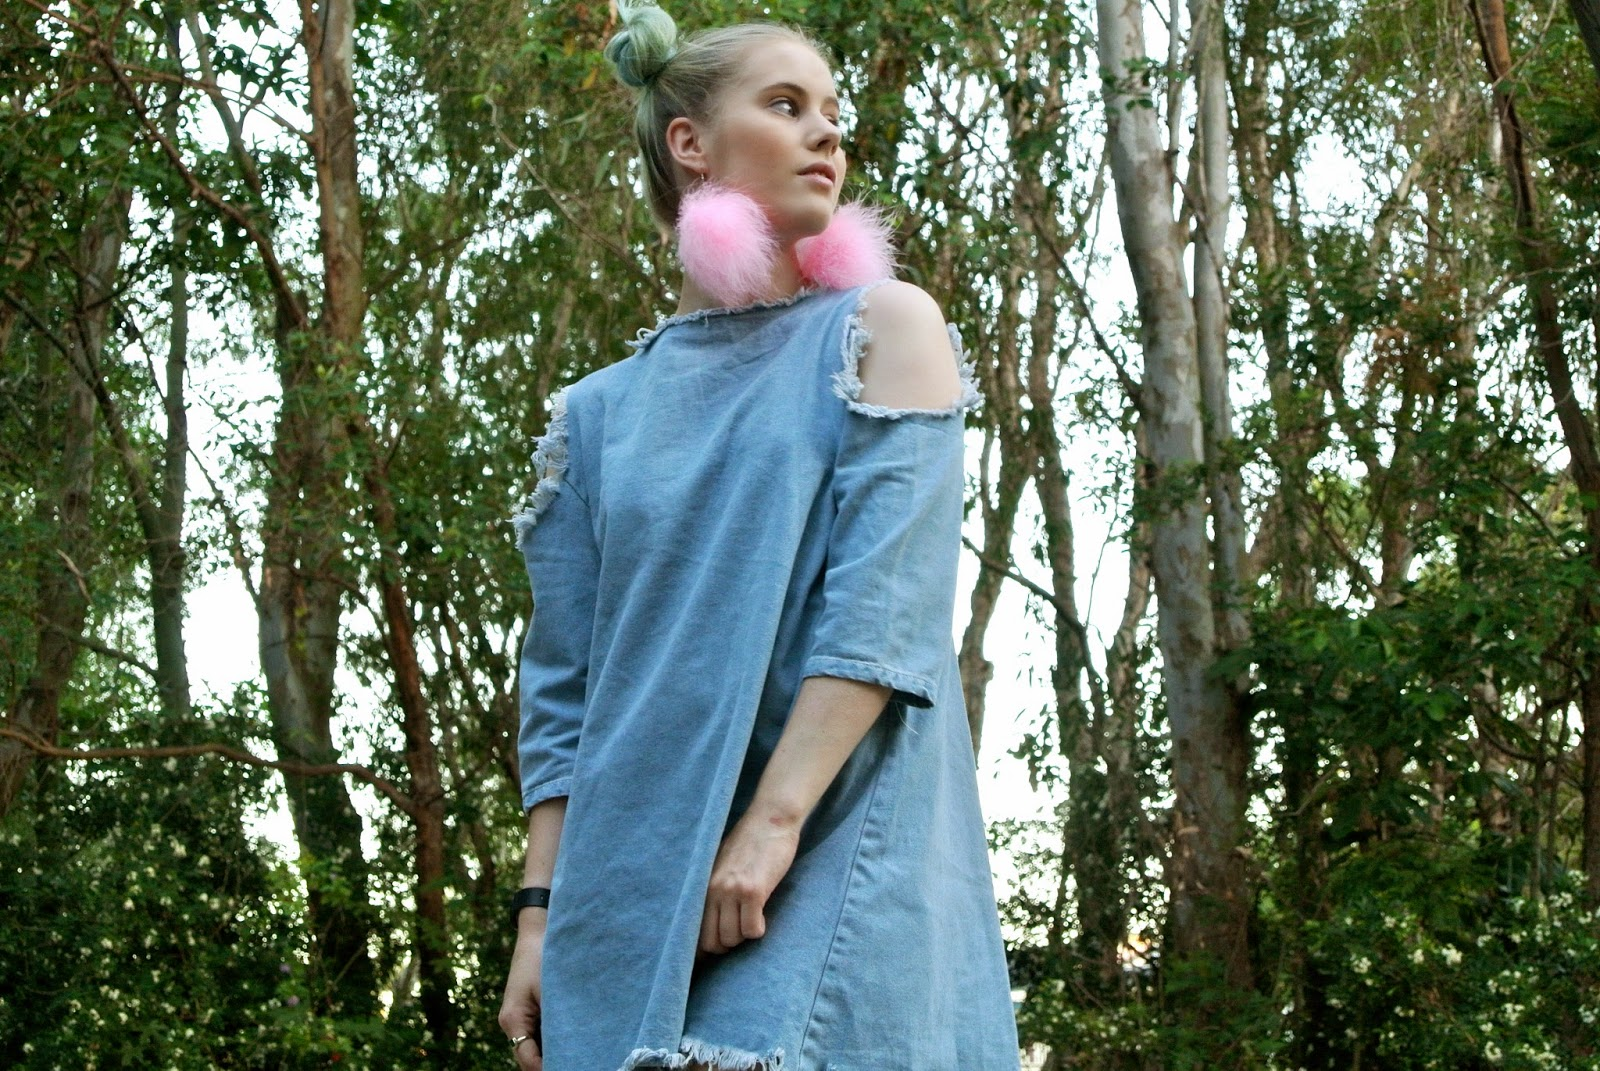 Pip O'Sullivan, Philippa O'Sullivan, outside is colours, outsideiscolours, fashion blog, OOTD, evan-evina, denim dress, distressed denim, frayed denim dress, fashion blogger outfit, marabou feather earrings, pom pom earrings, DIY poms earrings, pink fluffy earrings, evan evina denim dress